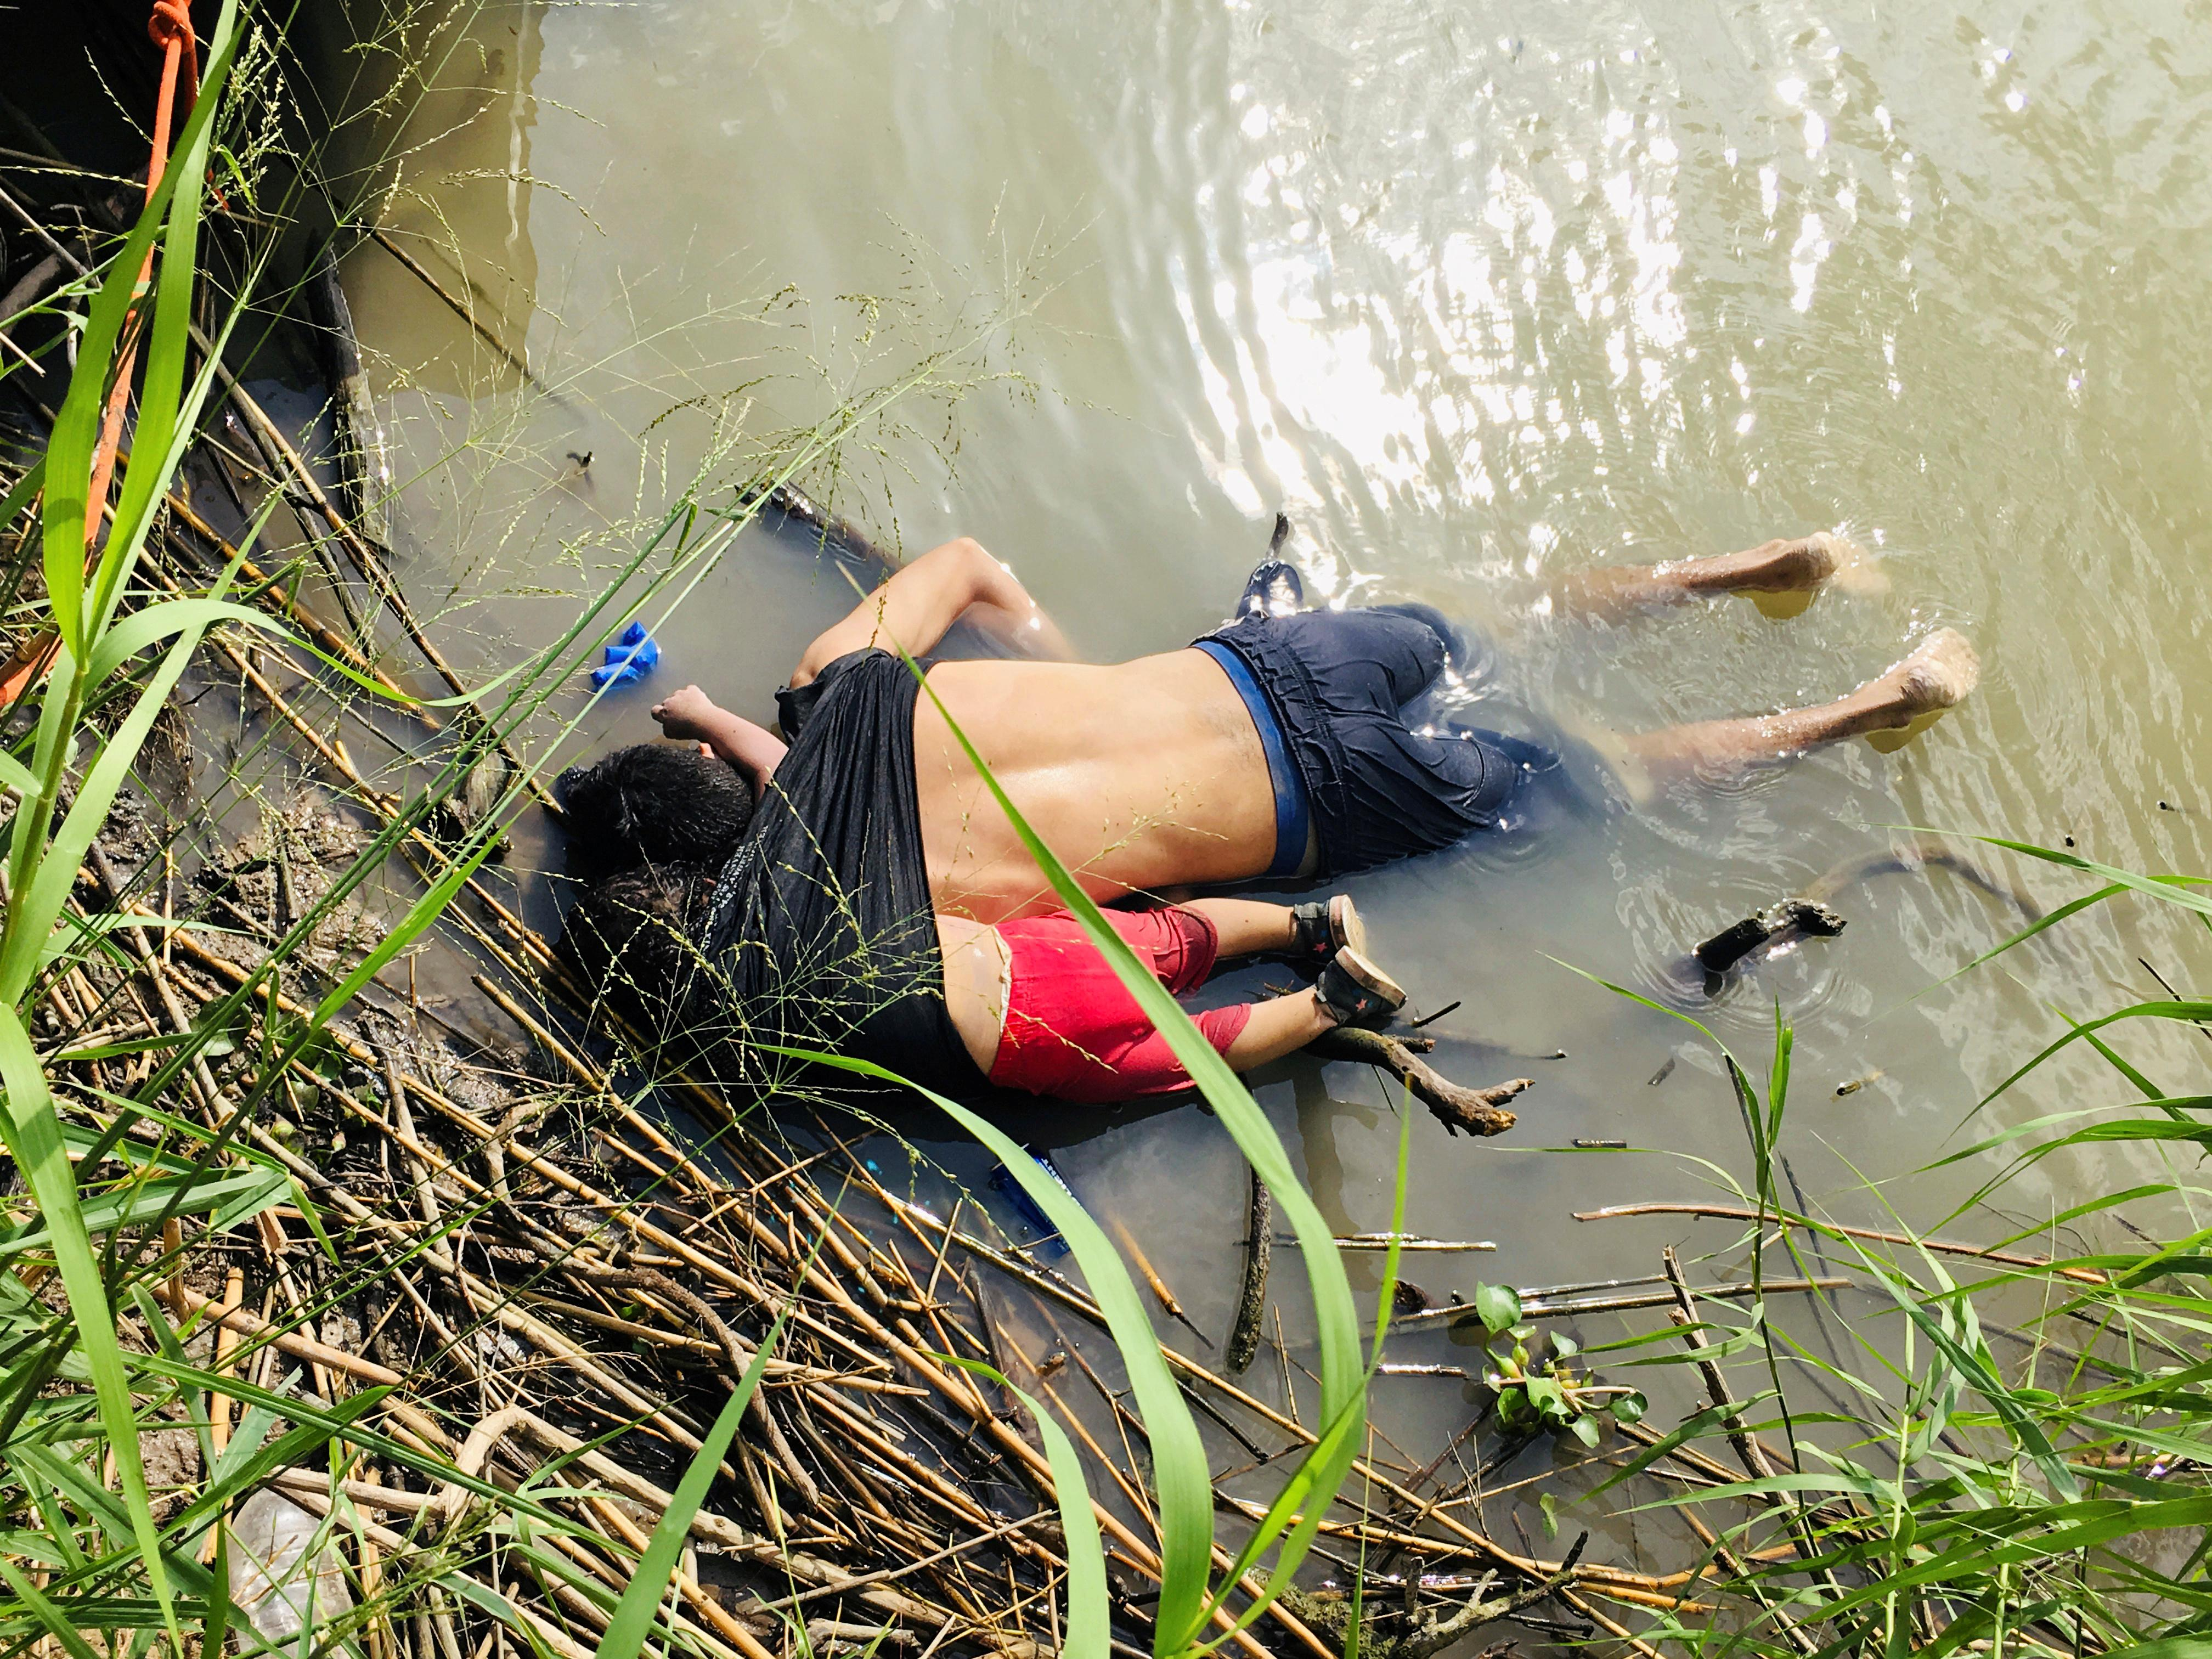 Photo of drowned migrants triggers fight over Trump asylum clampdown